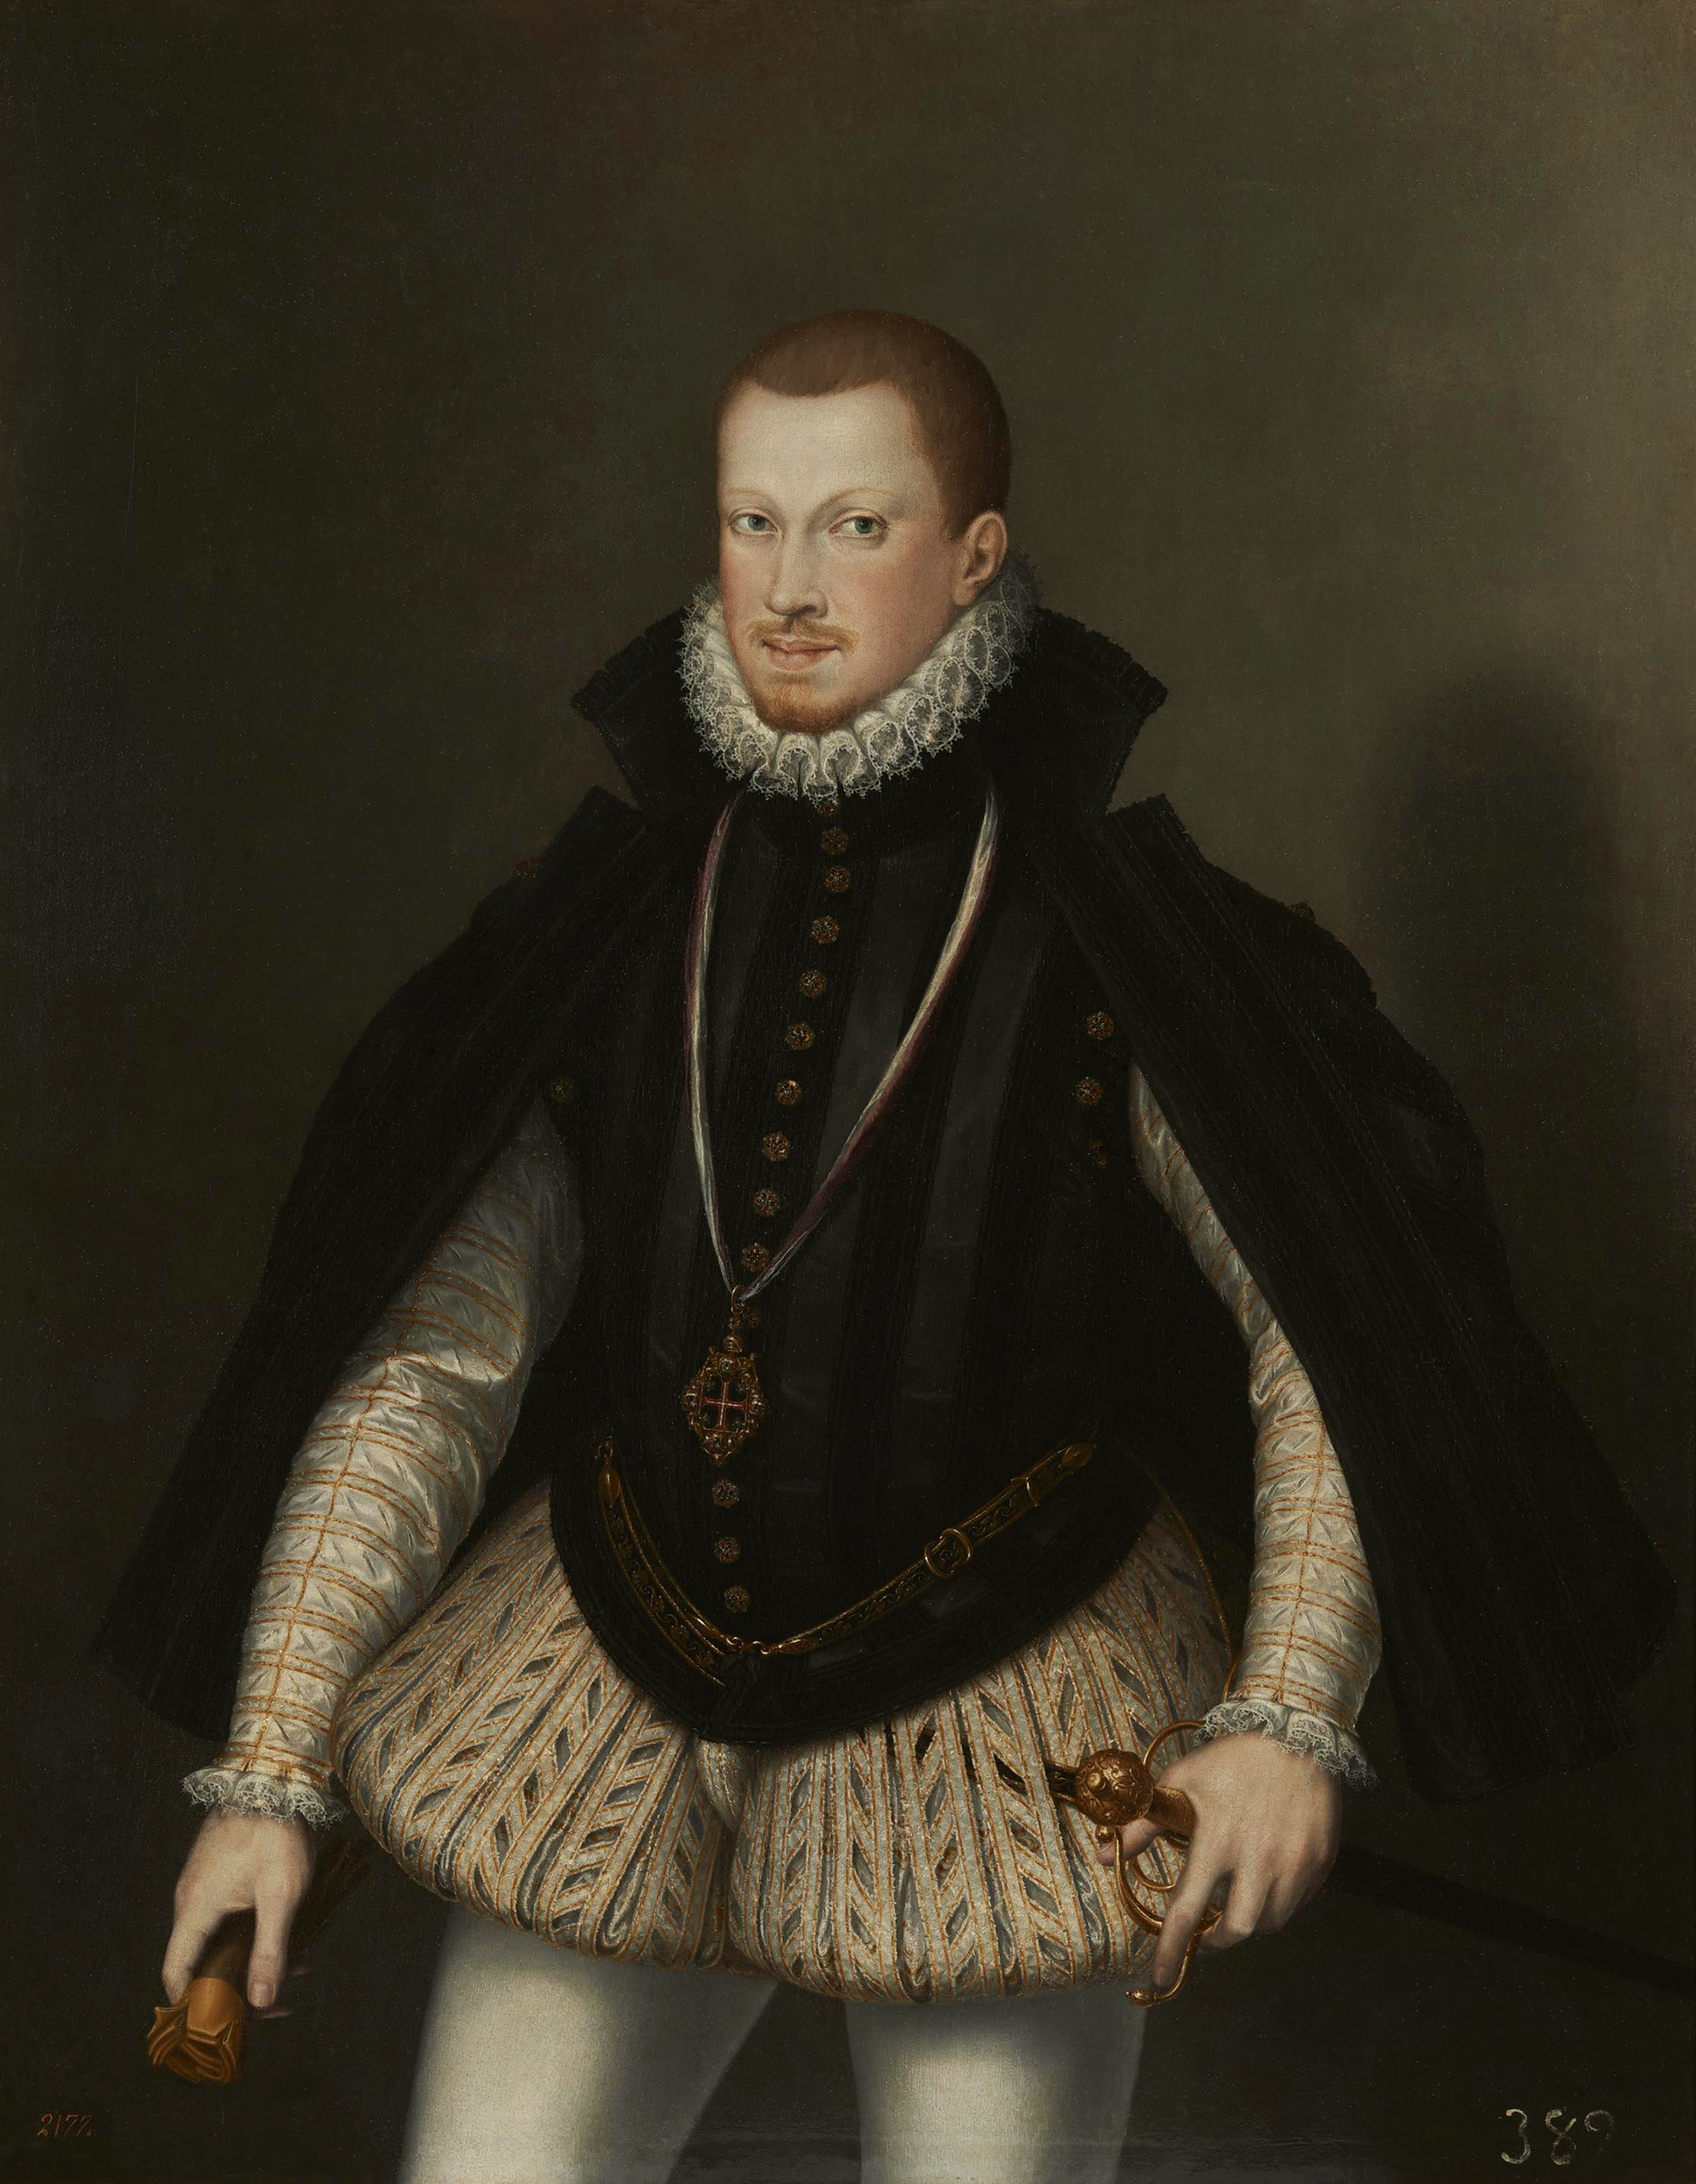 Portrait of Sebastian I (1554-1578), King of Portugal and the Algarves (1557-1578), Regency (1557-1568), 1575 | Portraits of Kings